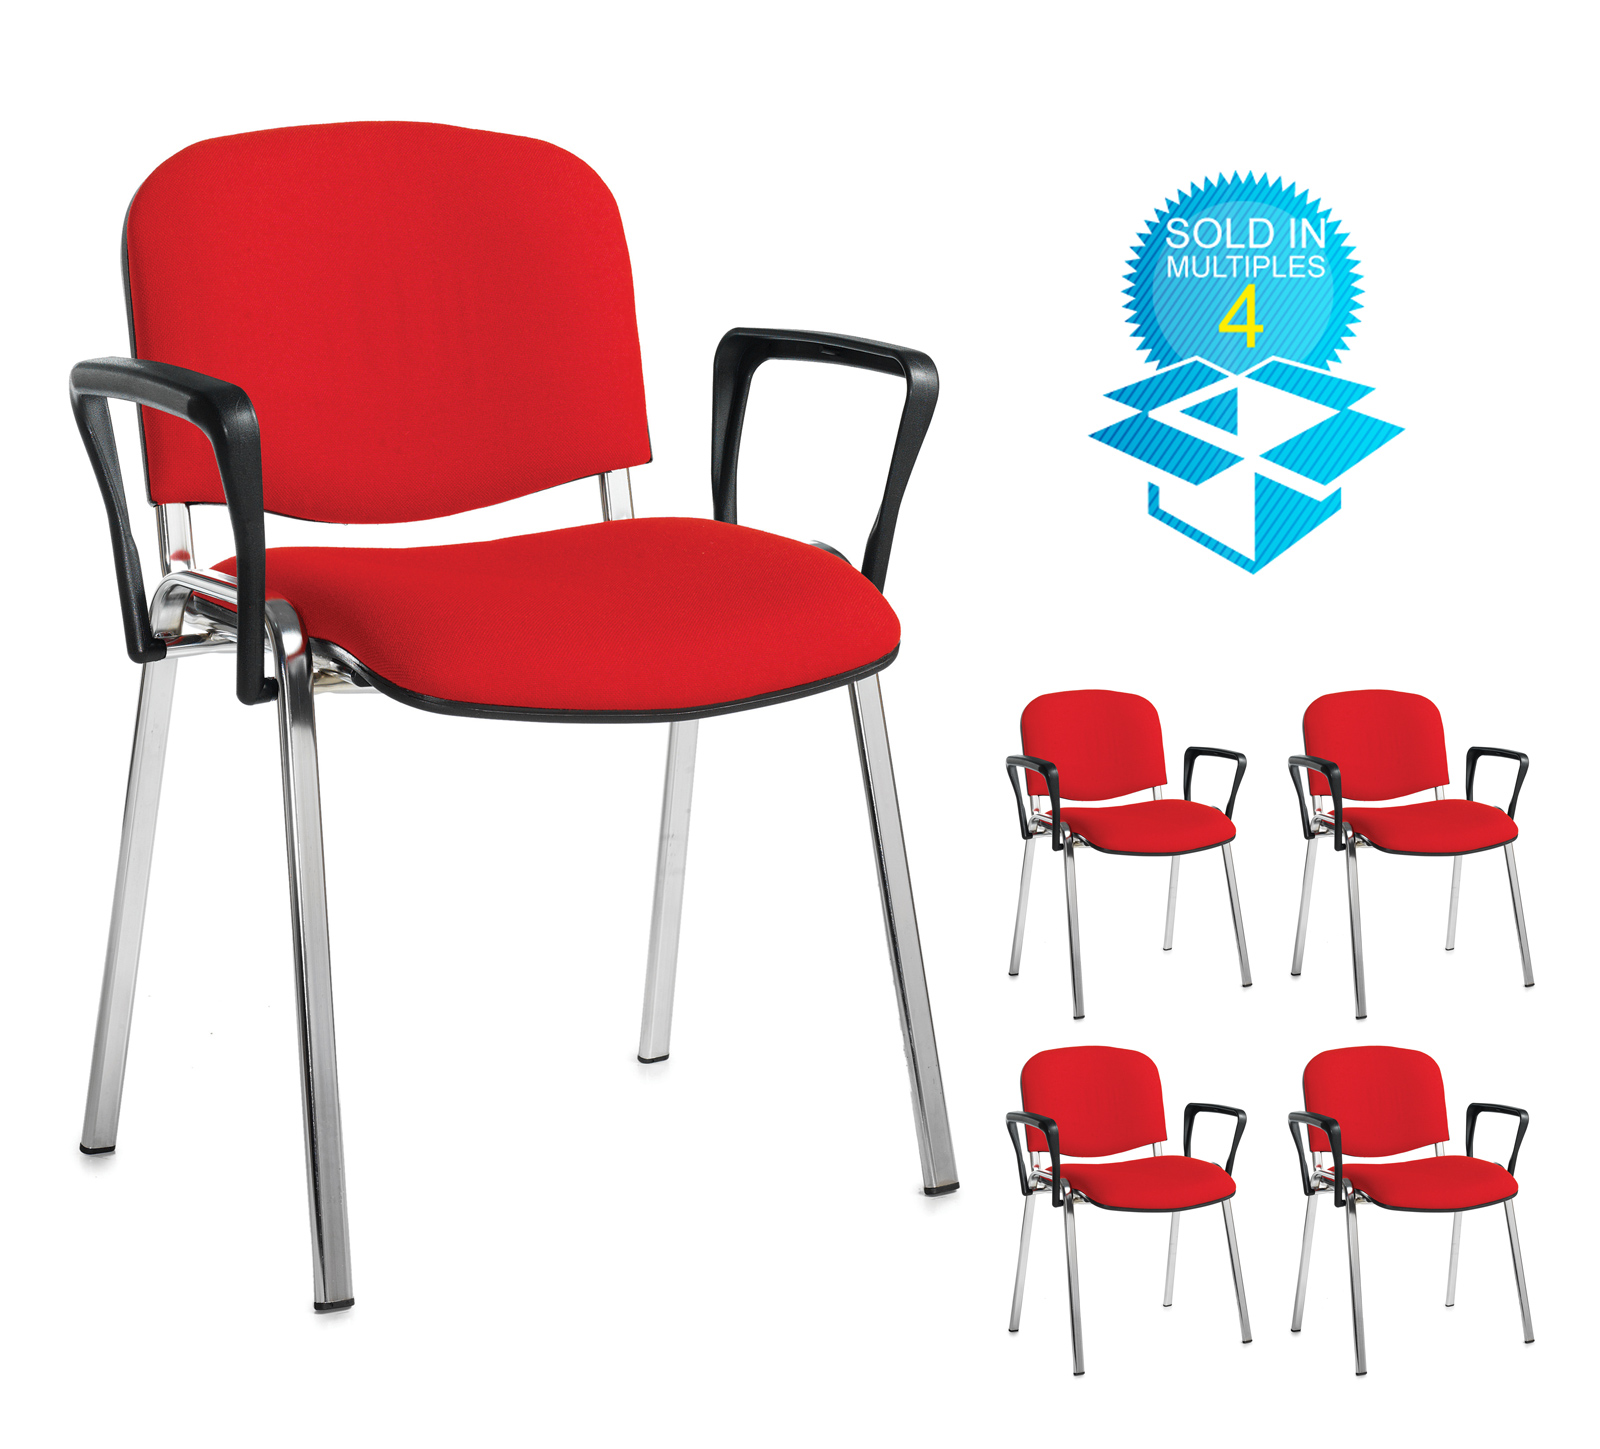 Taurus meeting room stackable chair (box of 4) with chrome frame and fixed arms - red